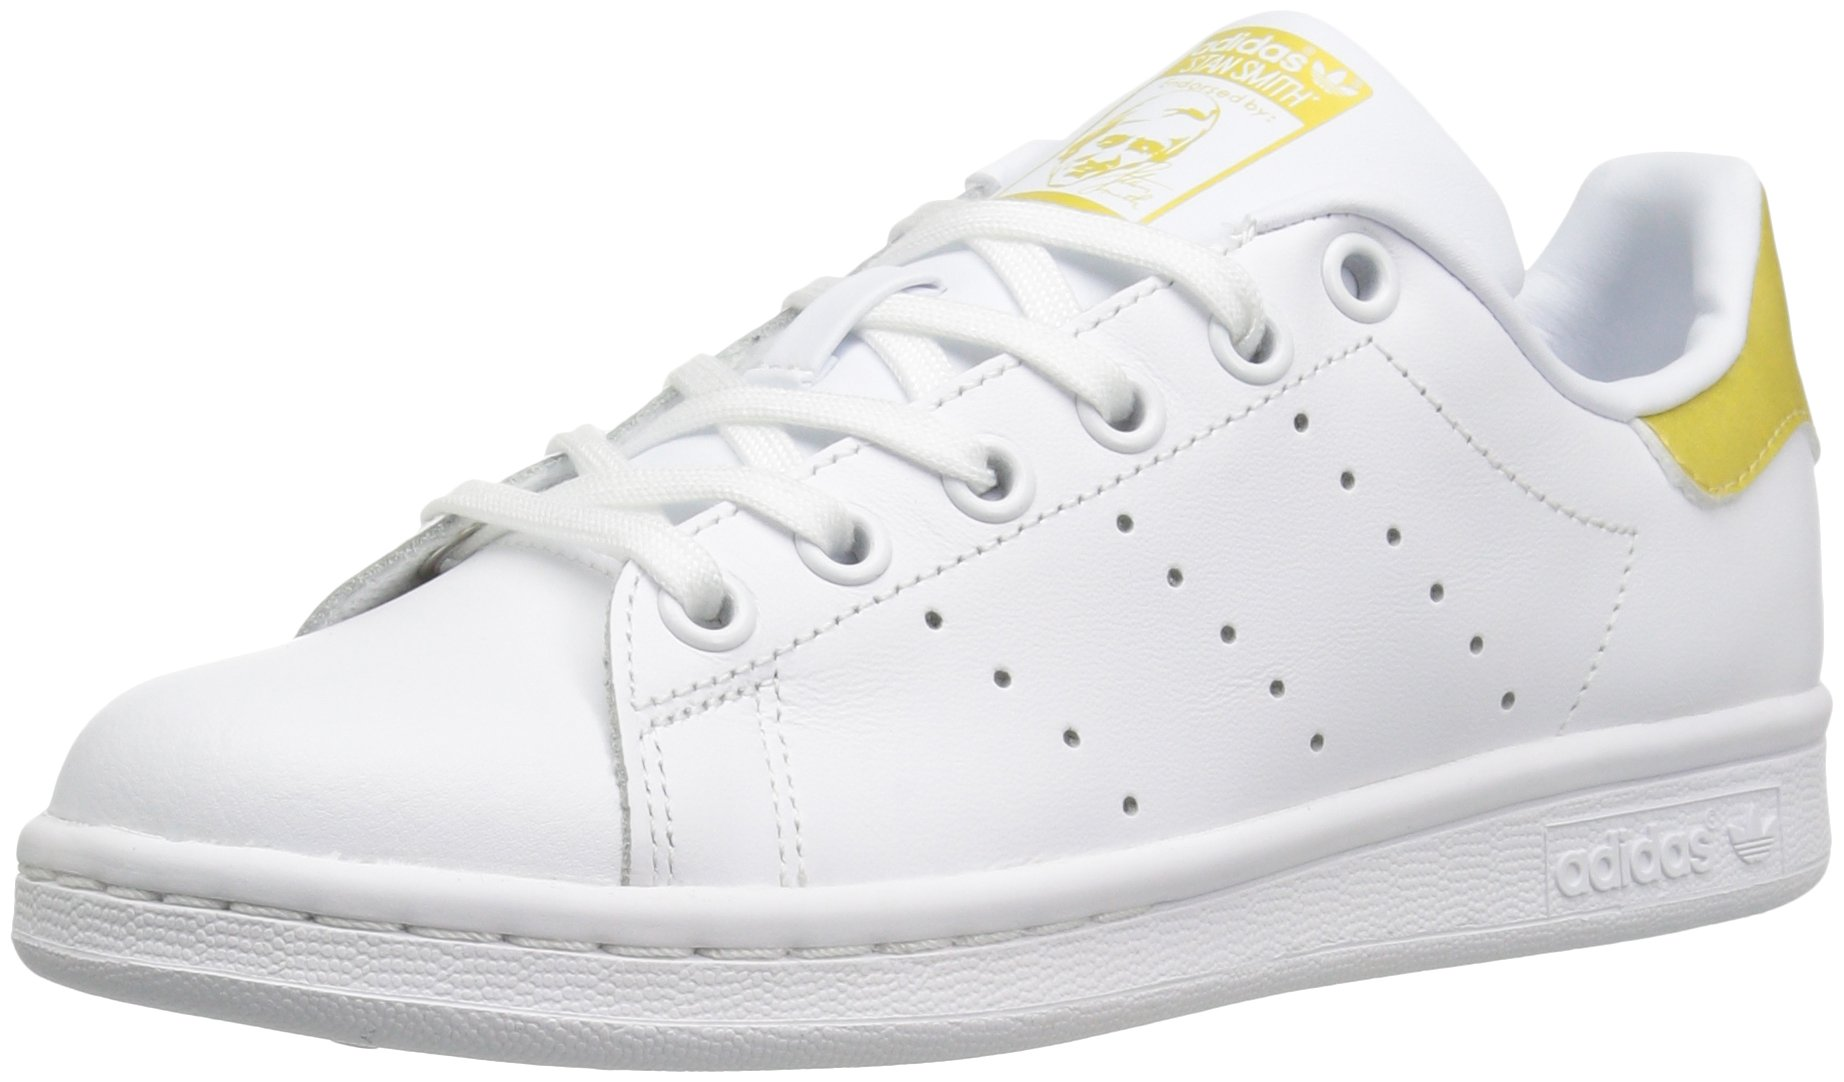 adidas Originals Boys' Stan Smith J Running Shoe, White/Metallic/Gold, 5 M US Big Kid